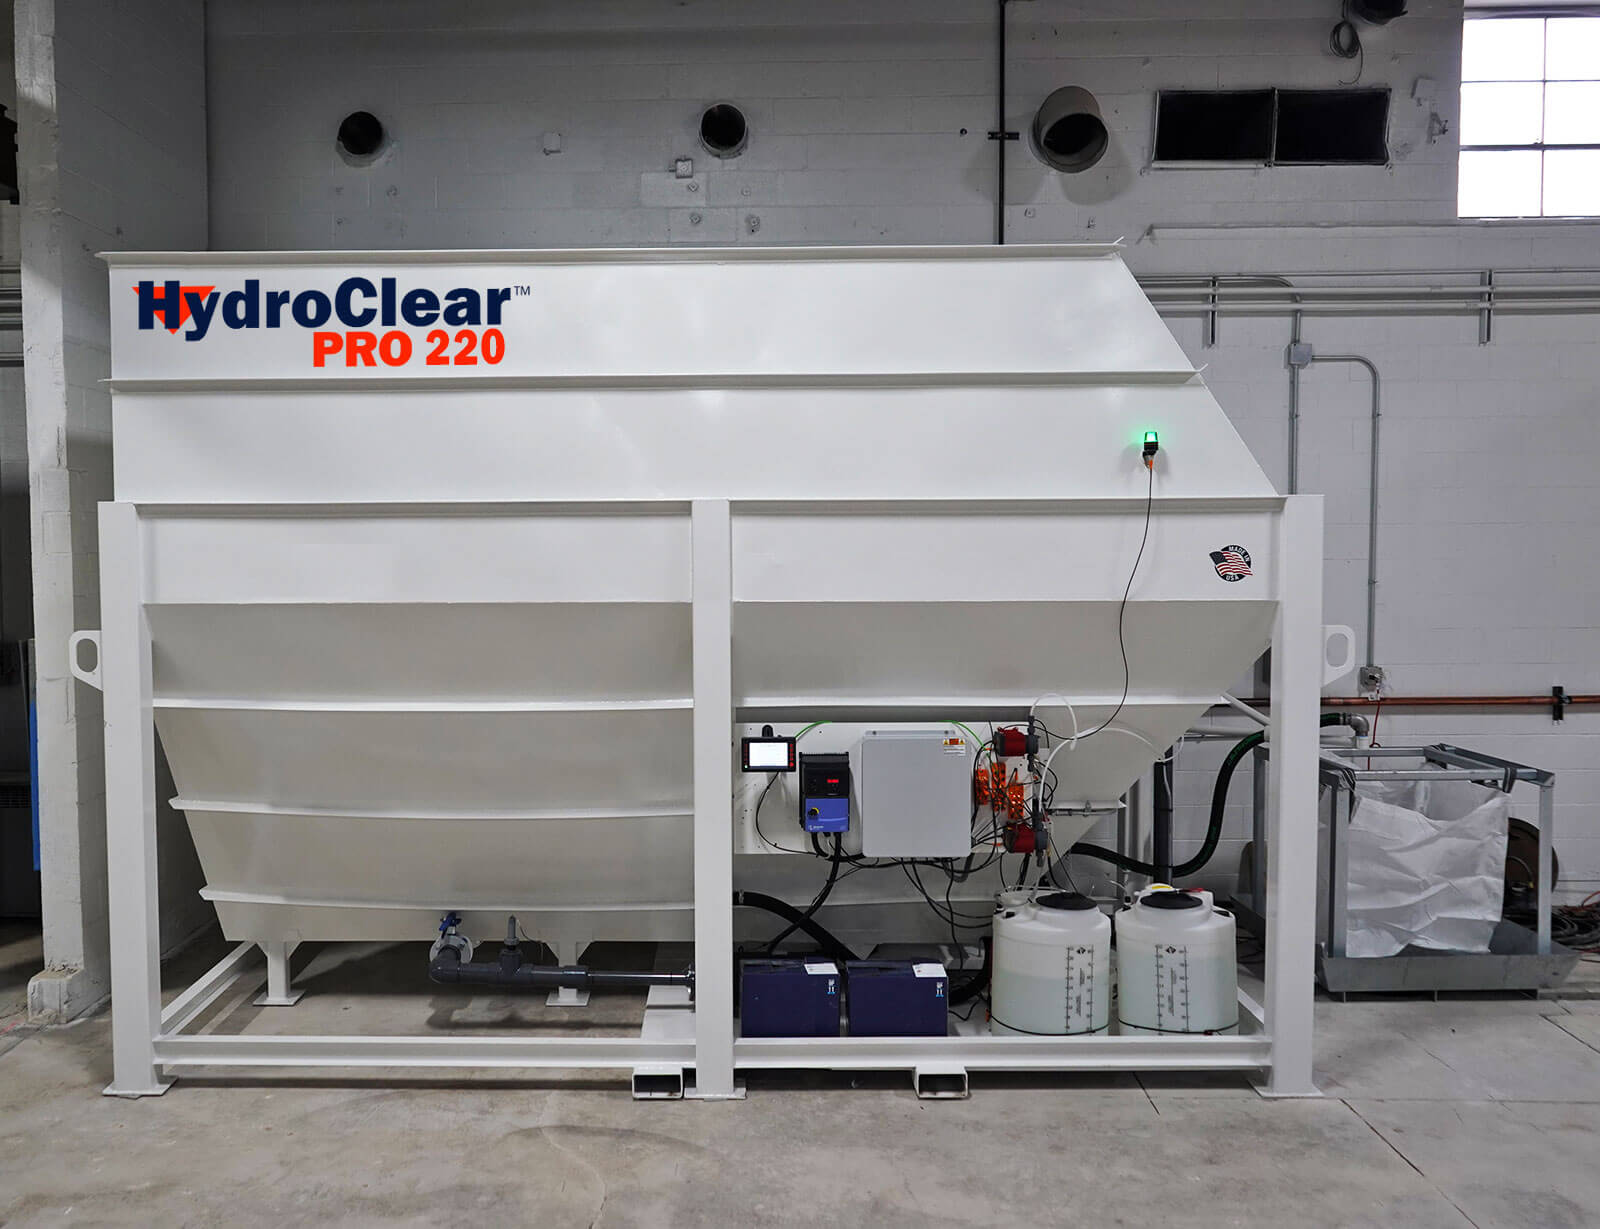 HydroClear Pro 220 Model | Water Recycling & Management System for Stone Fabrication Machinery